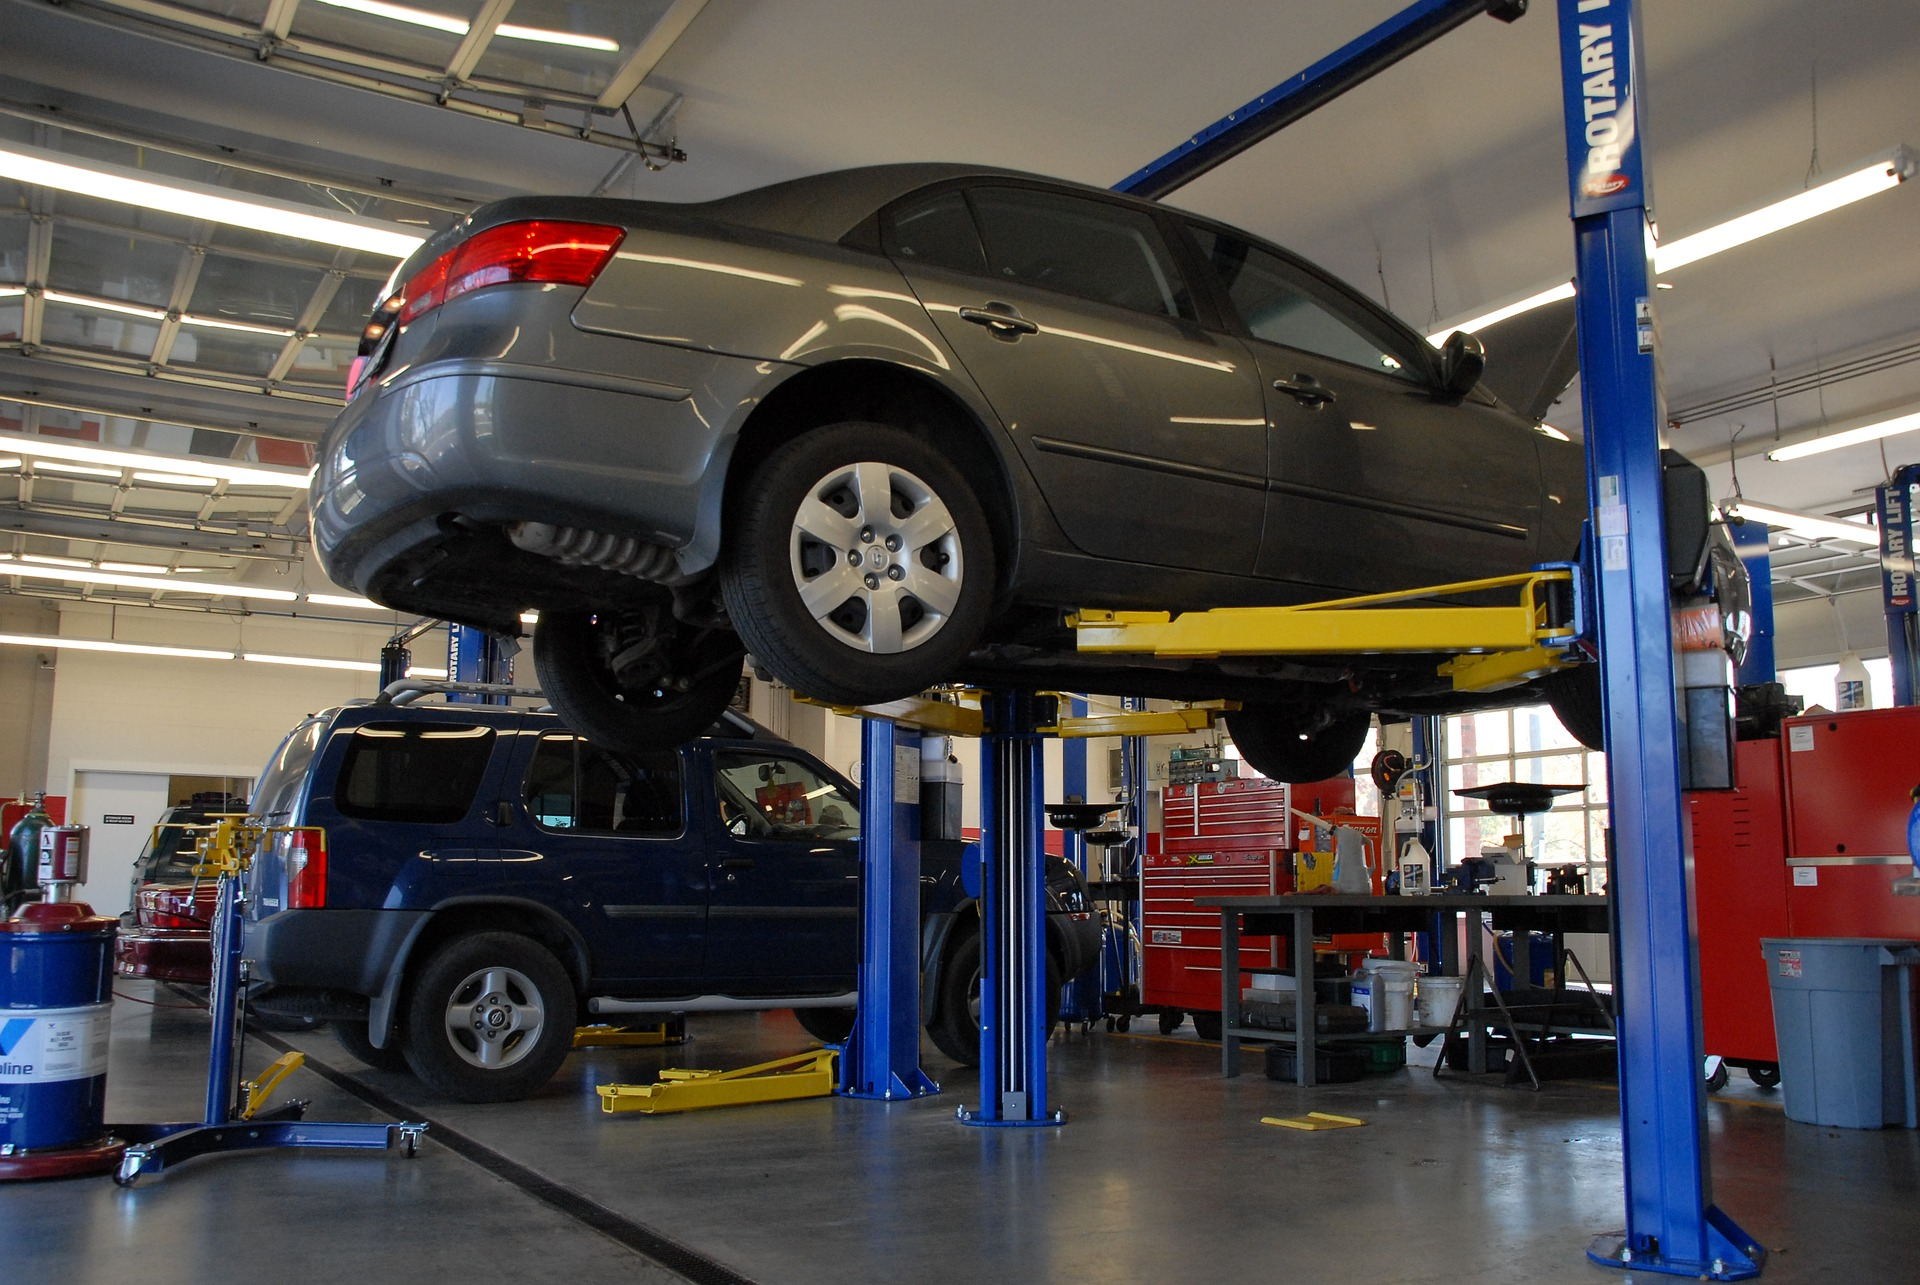 Photo of vehicle being service in repair shop